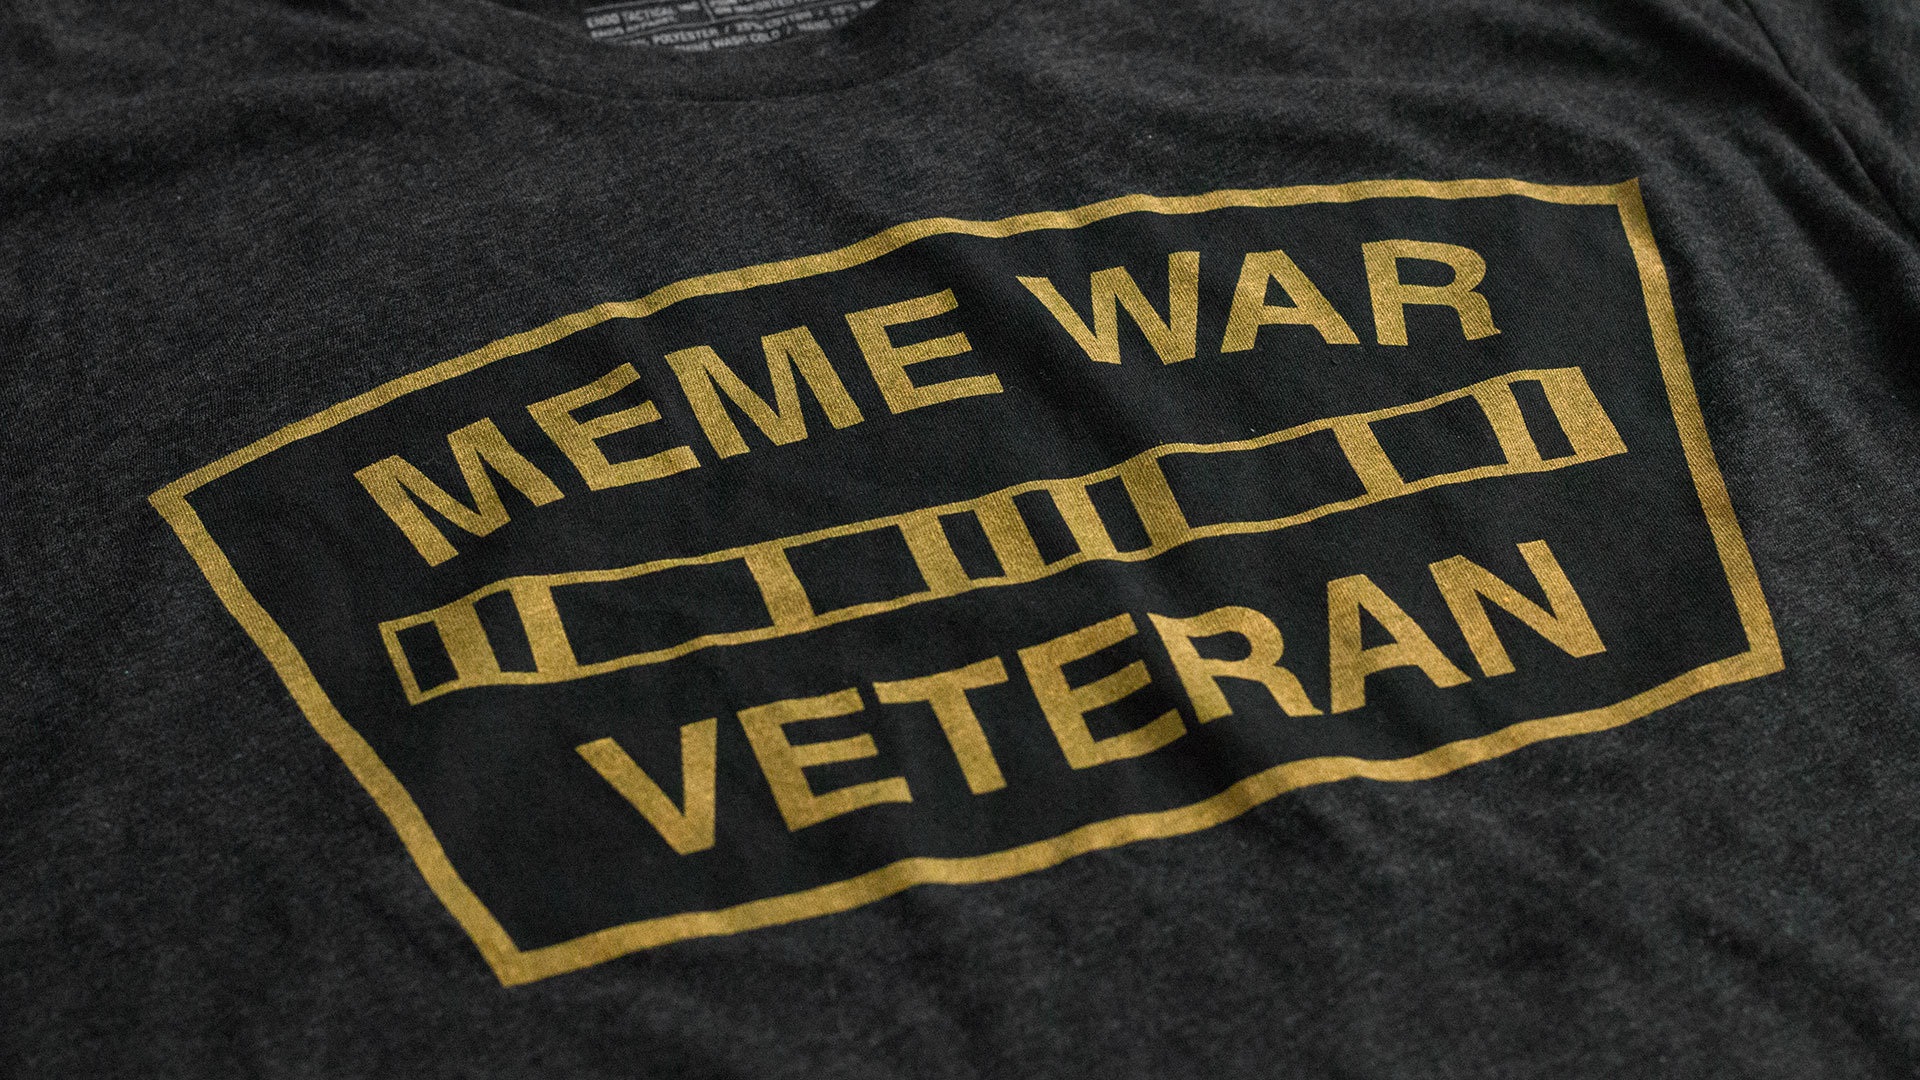 Meme War Veteran Logo T-Shirt Detail 2